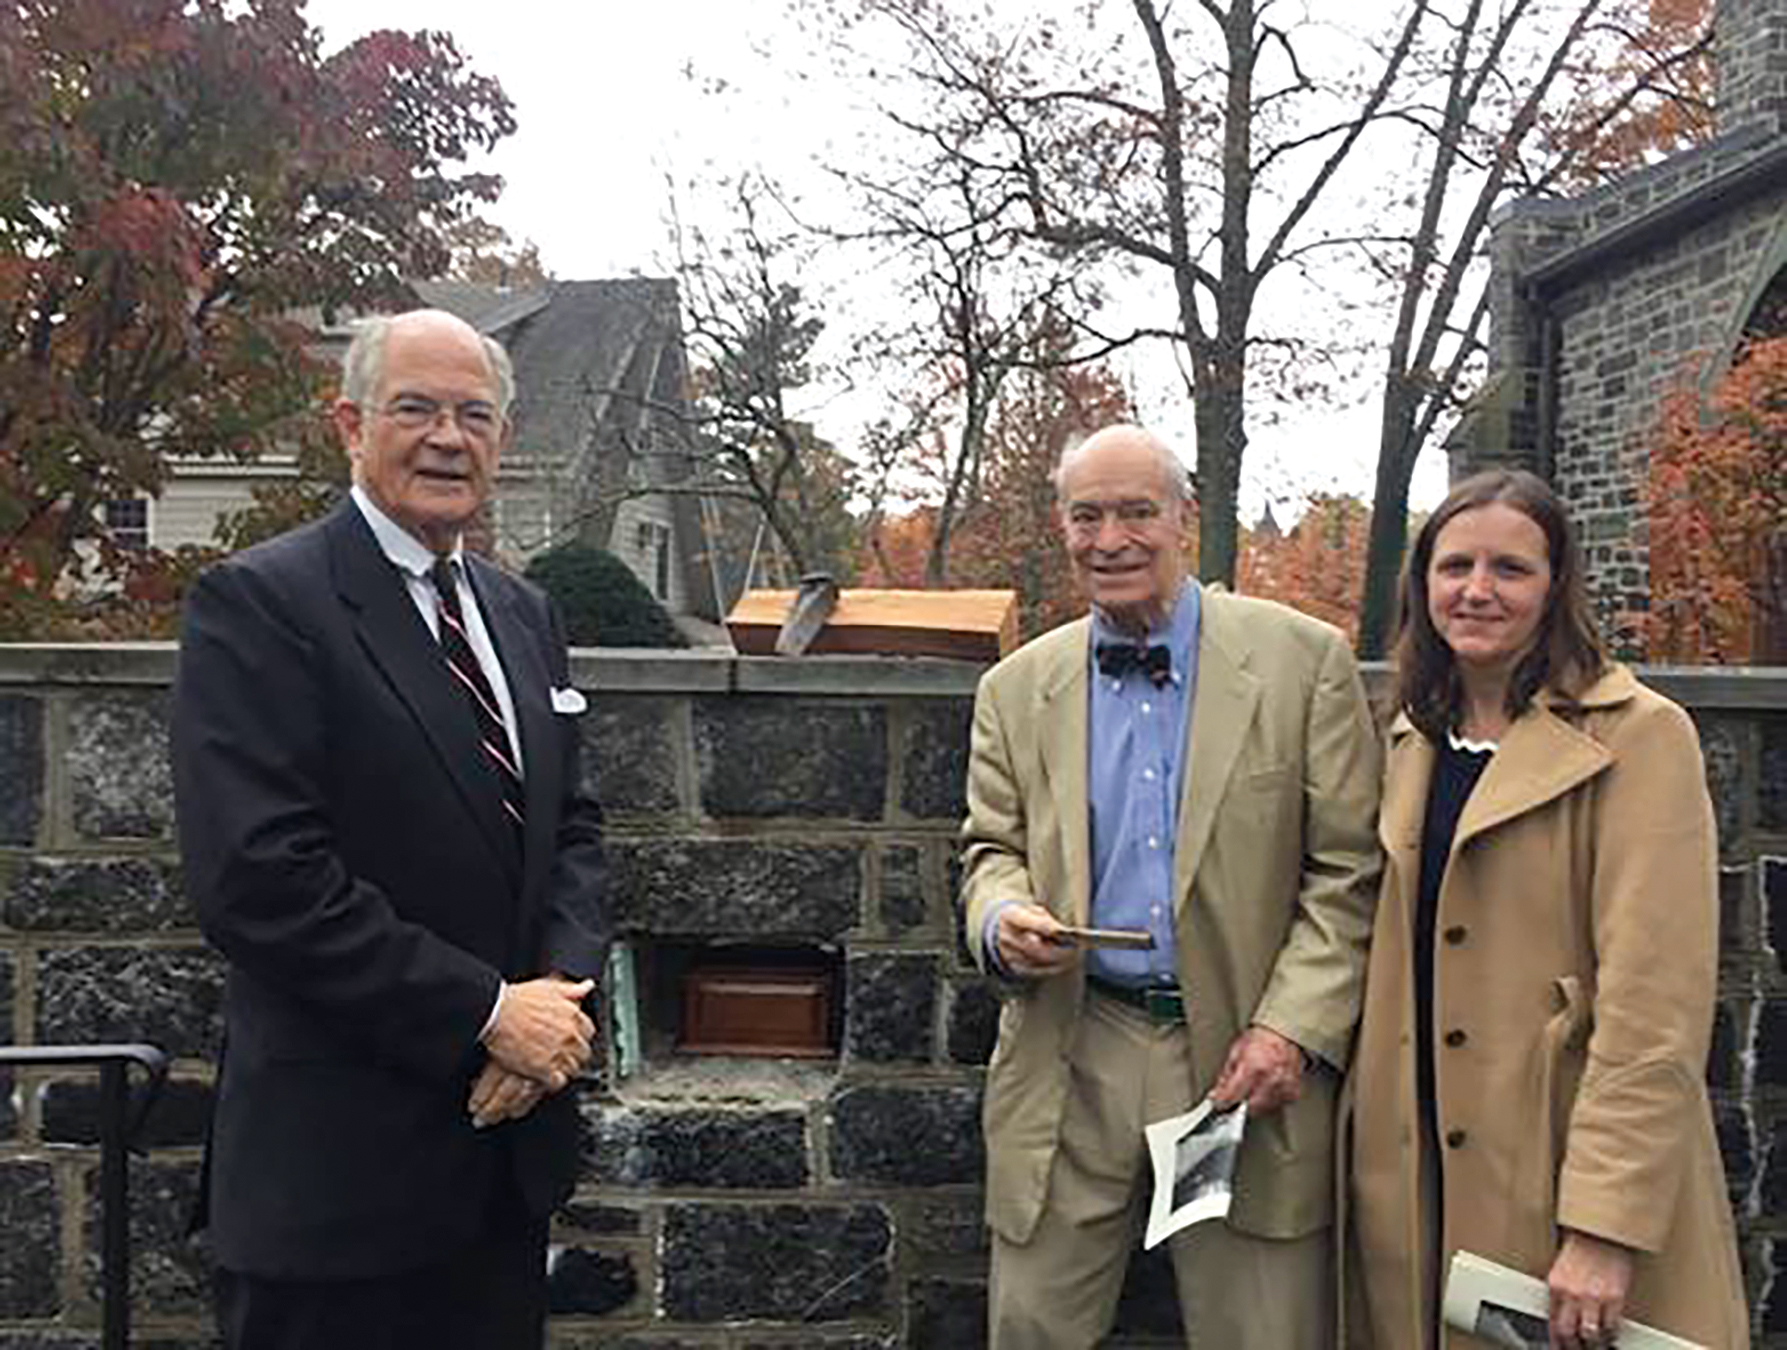 (L. to r.) Guy Rutherford '58, Patrick Rulon-Miller '58, and Melissa Walters at the final resting place of Bill Kirk '58, St. Luke's Parish, Darien, Conn.